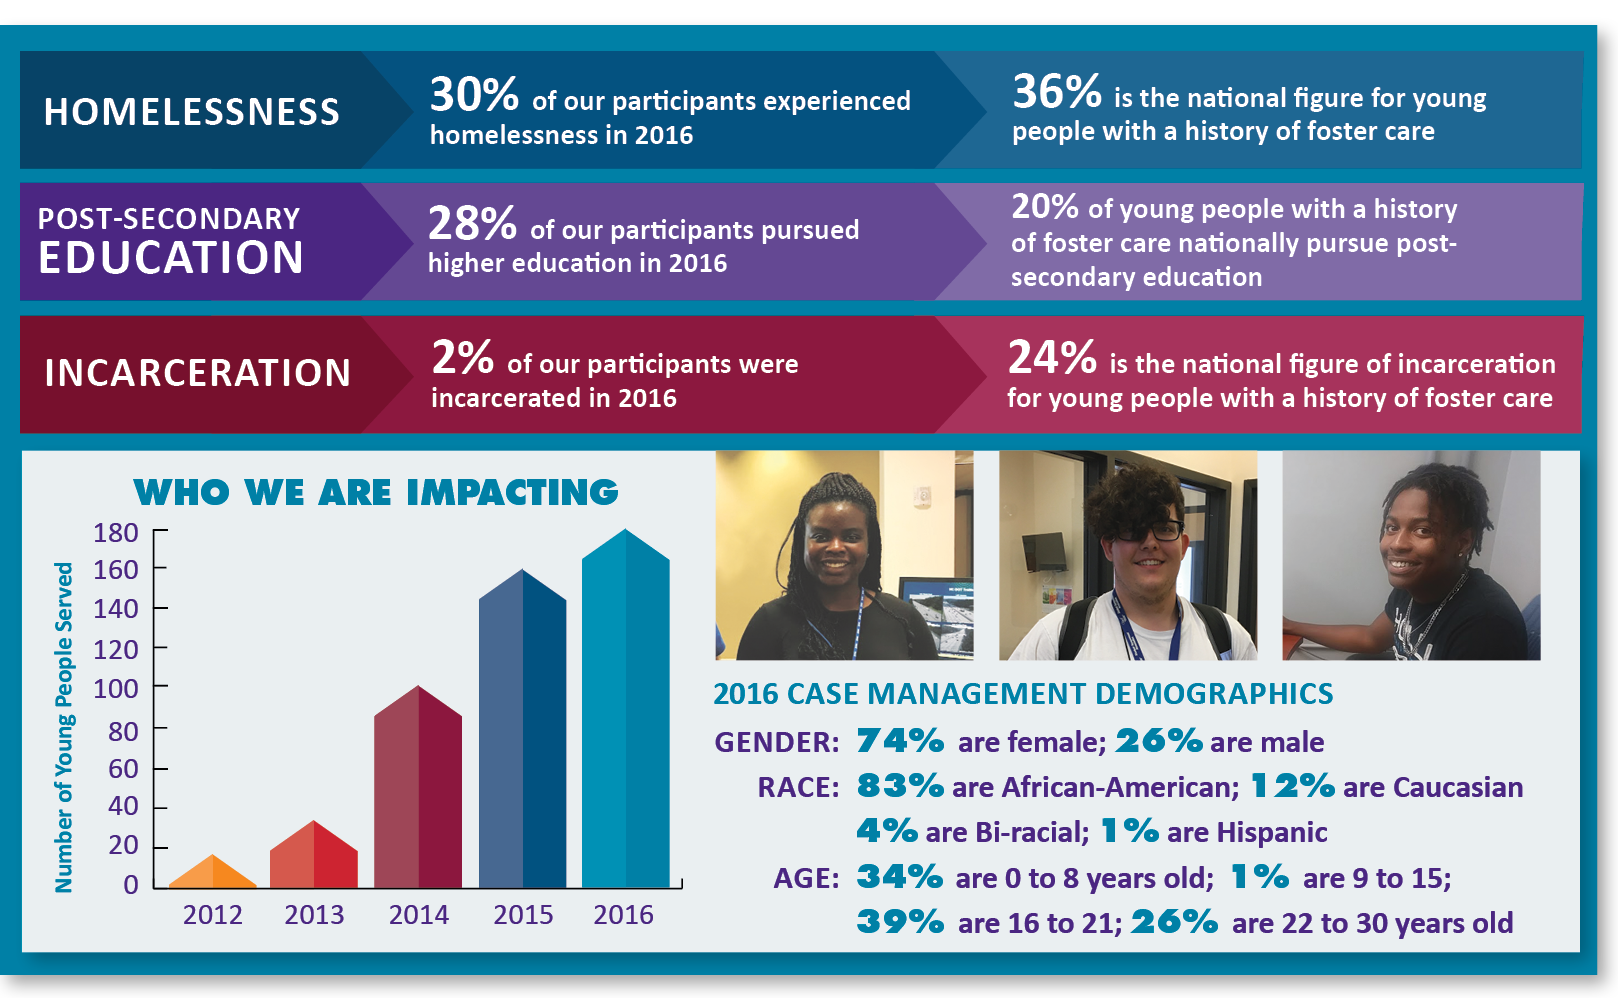 Infographic showing 2016 results for Hope Center programs